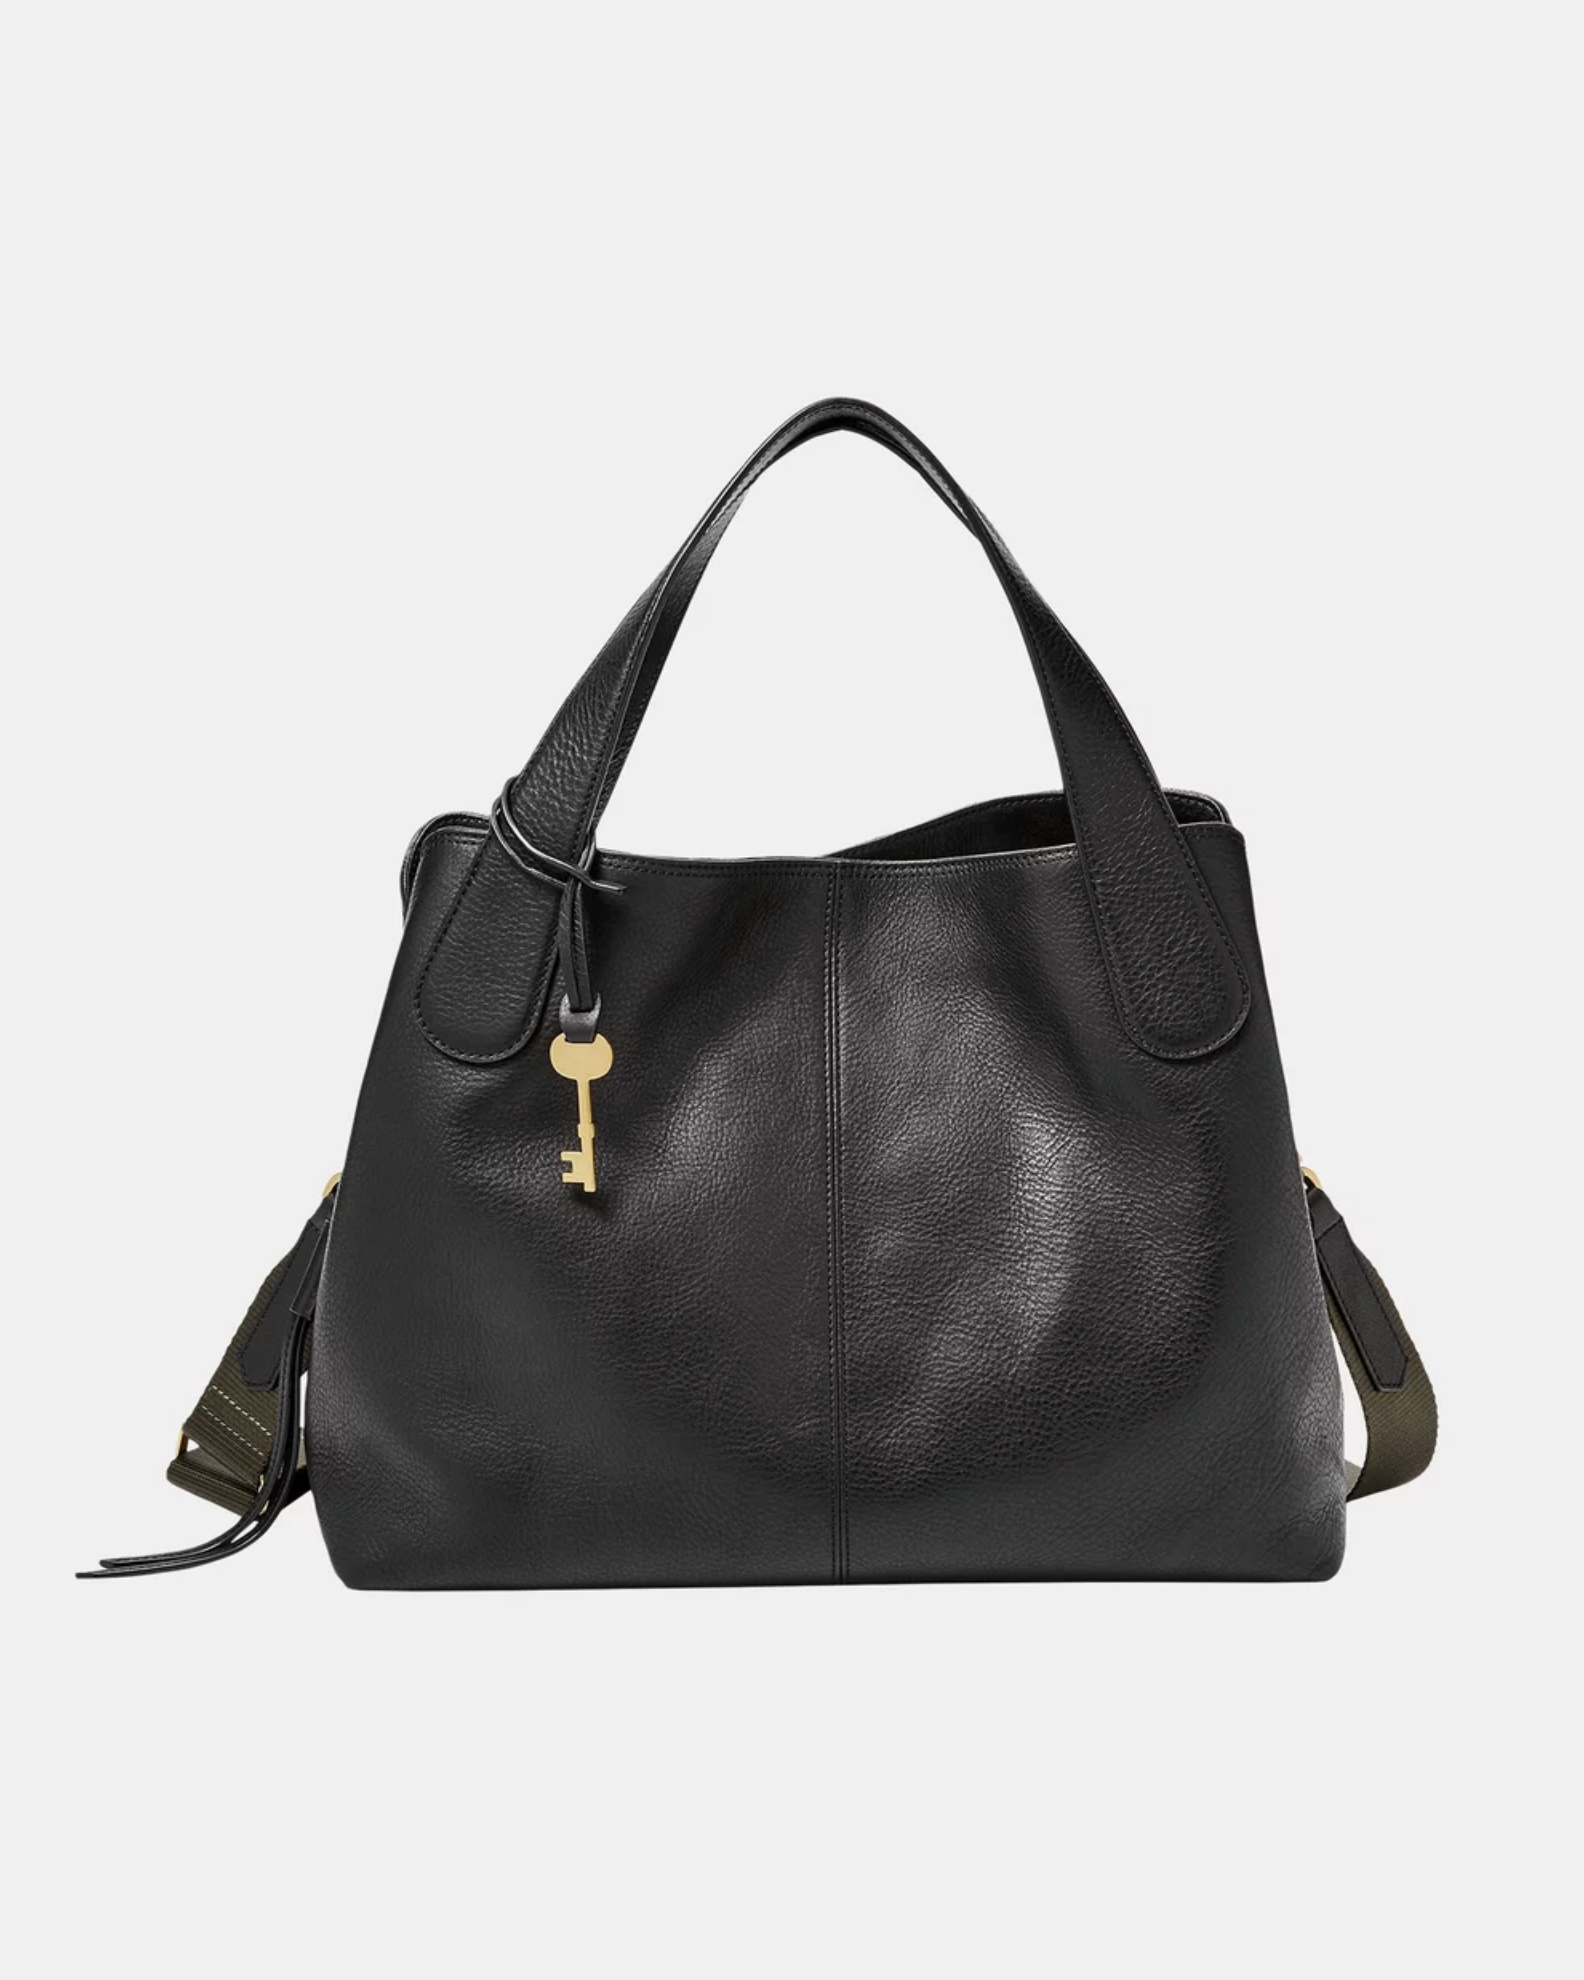 Fossil - Maya Black Satchel Bag